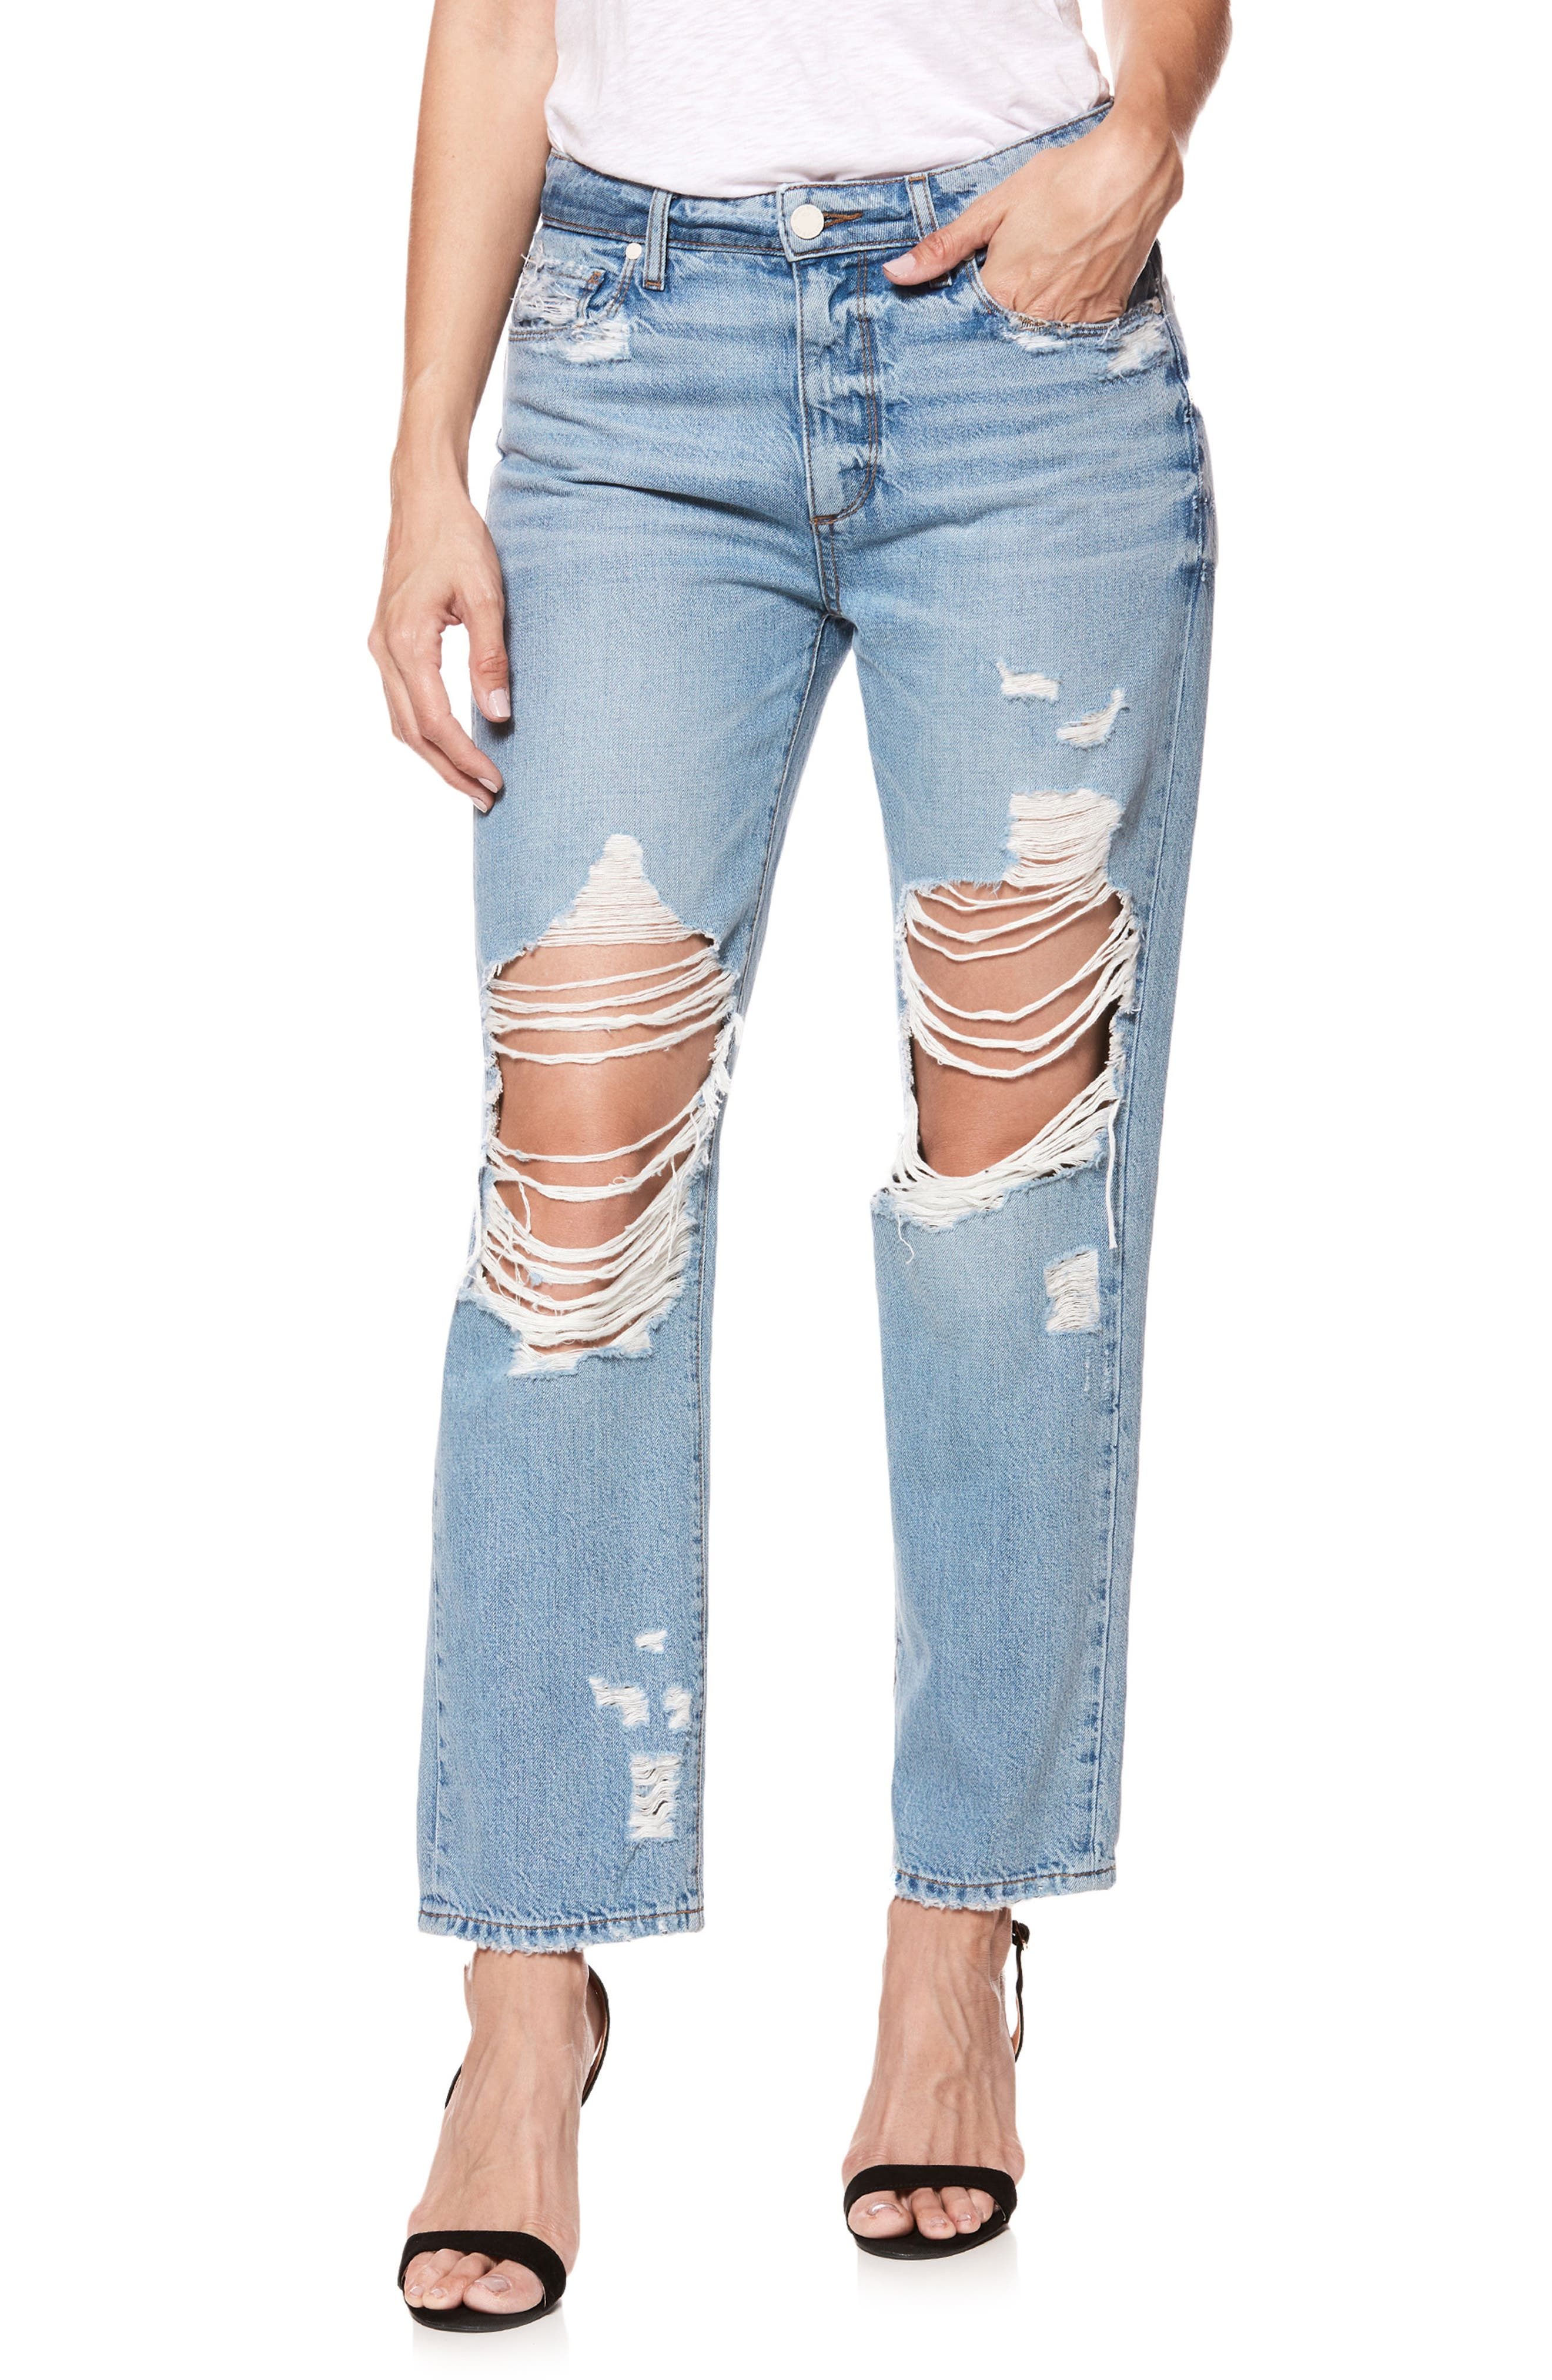 Noella Ripped Straight Leg Jeans,                             Main thumbnail 1, color,                             Jovie Destructed